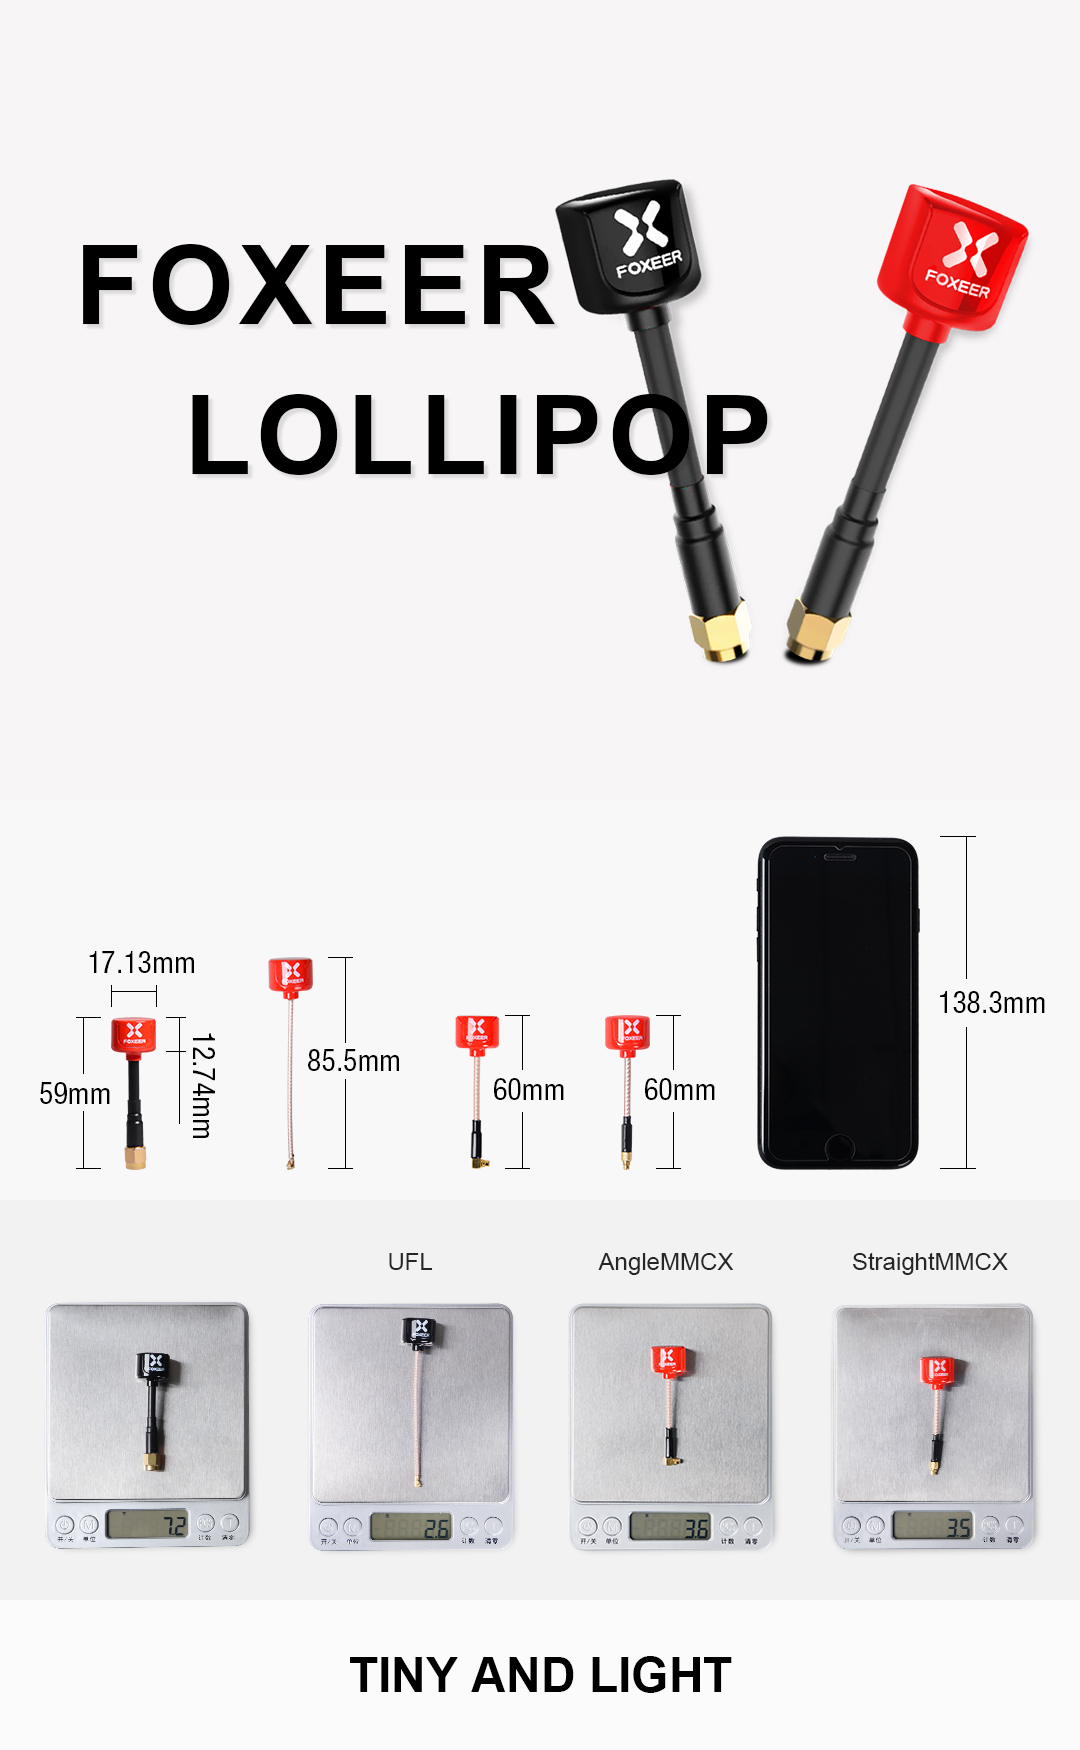 2pcs Foxeer Lollipop 85.5mm 5.8G 2.3dBi RHCP UFL Super Mini FPV Antenna Red/Black For RC Drone